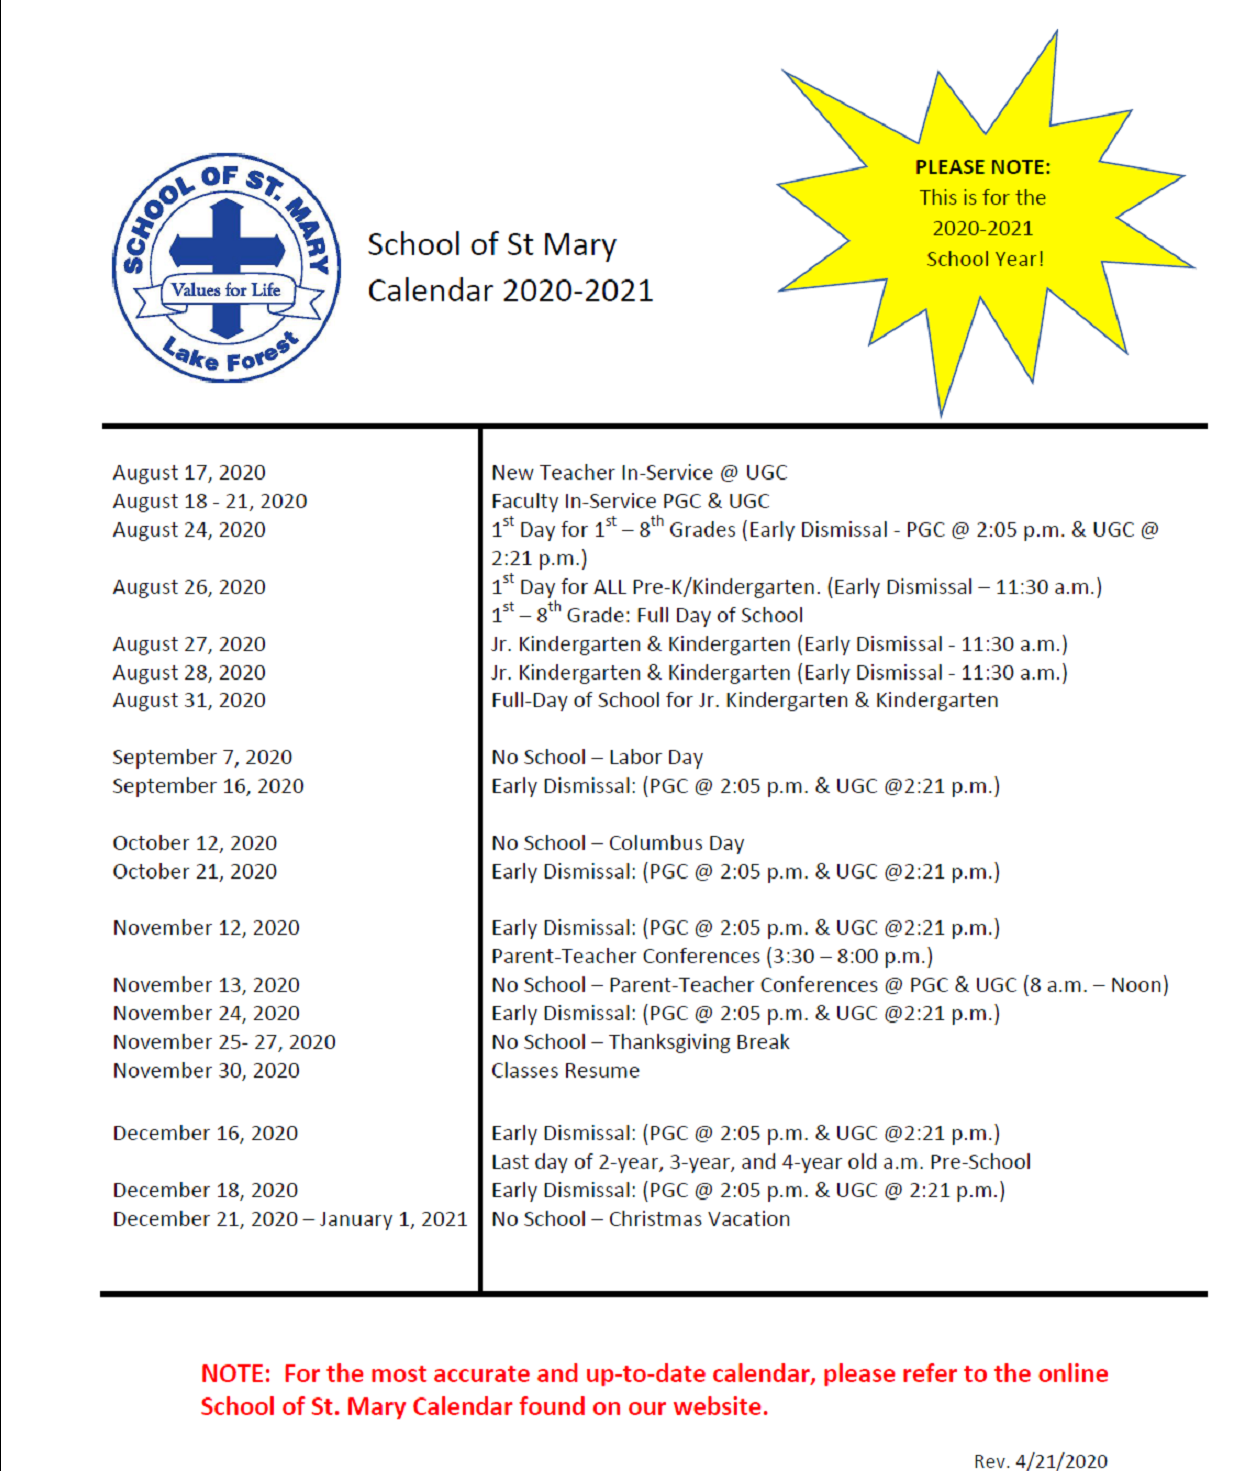 Calendar - School Of St. Mary Regarding St. Charles Community College Summer 2021 Calendar